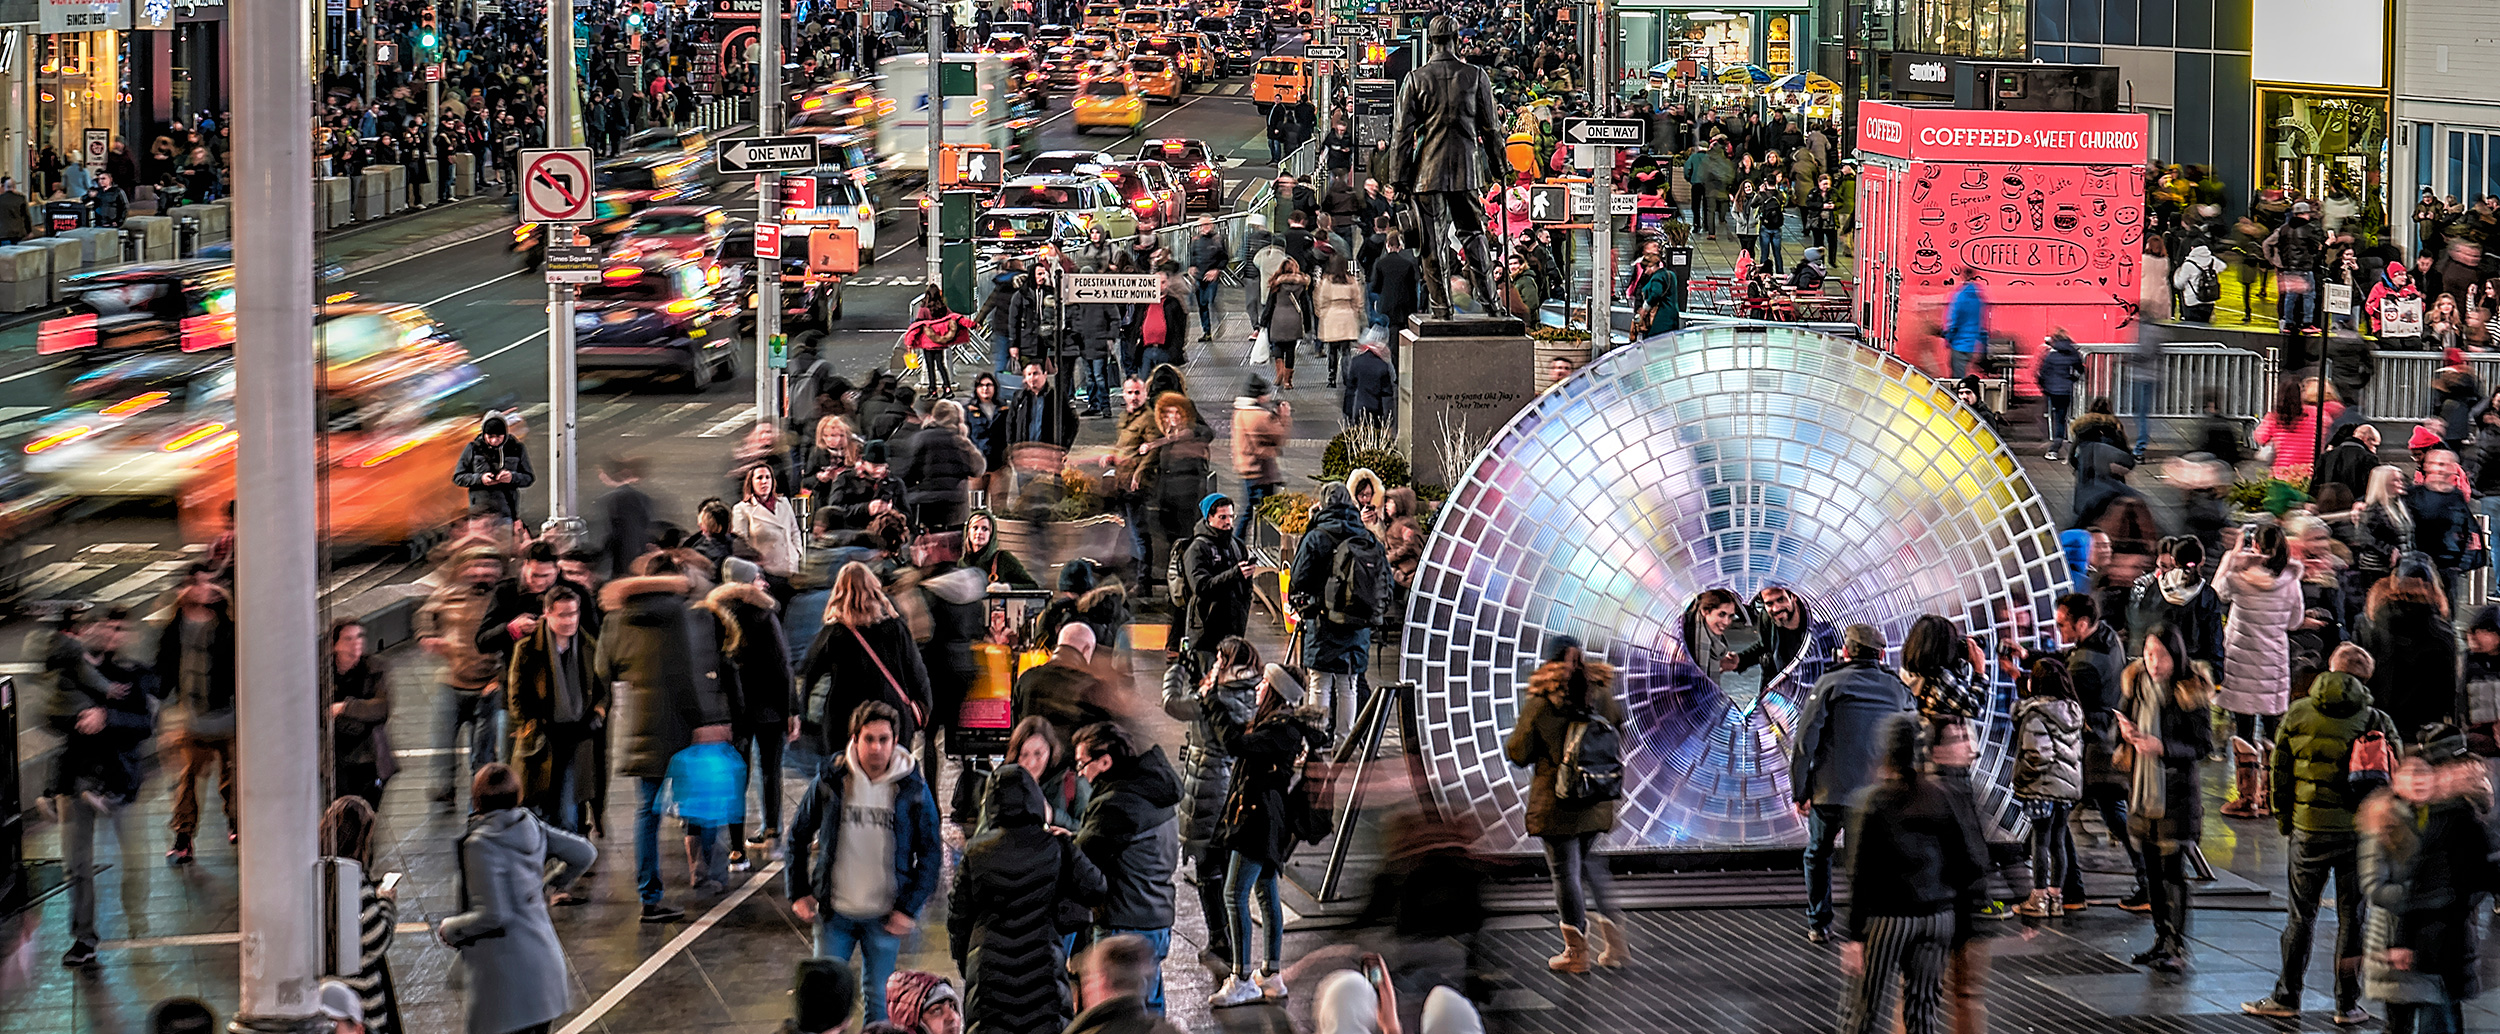 La lentille Window to the heart de Formlabs, imprimée en 3D, sur Time Square.